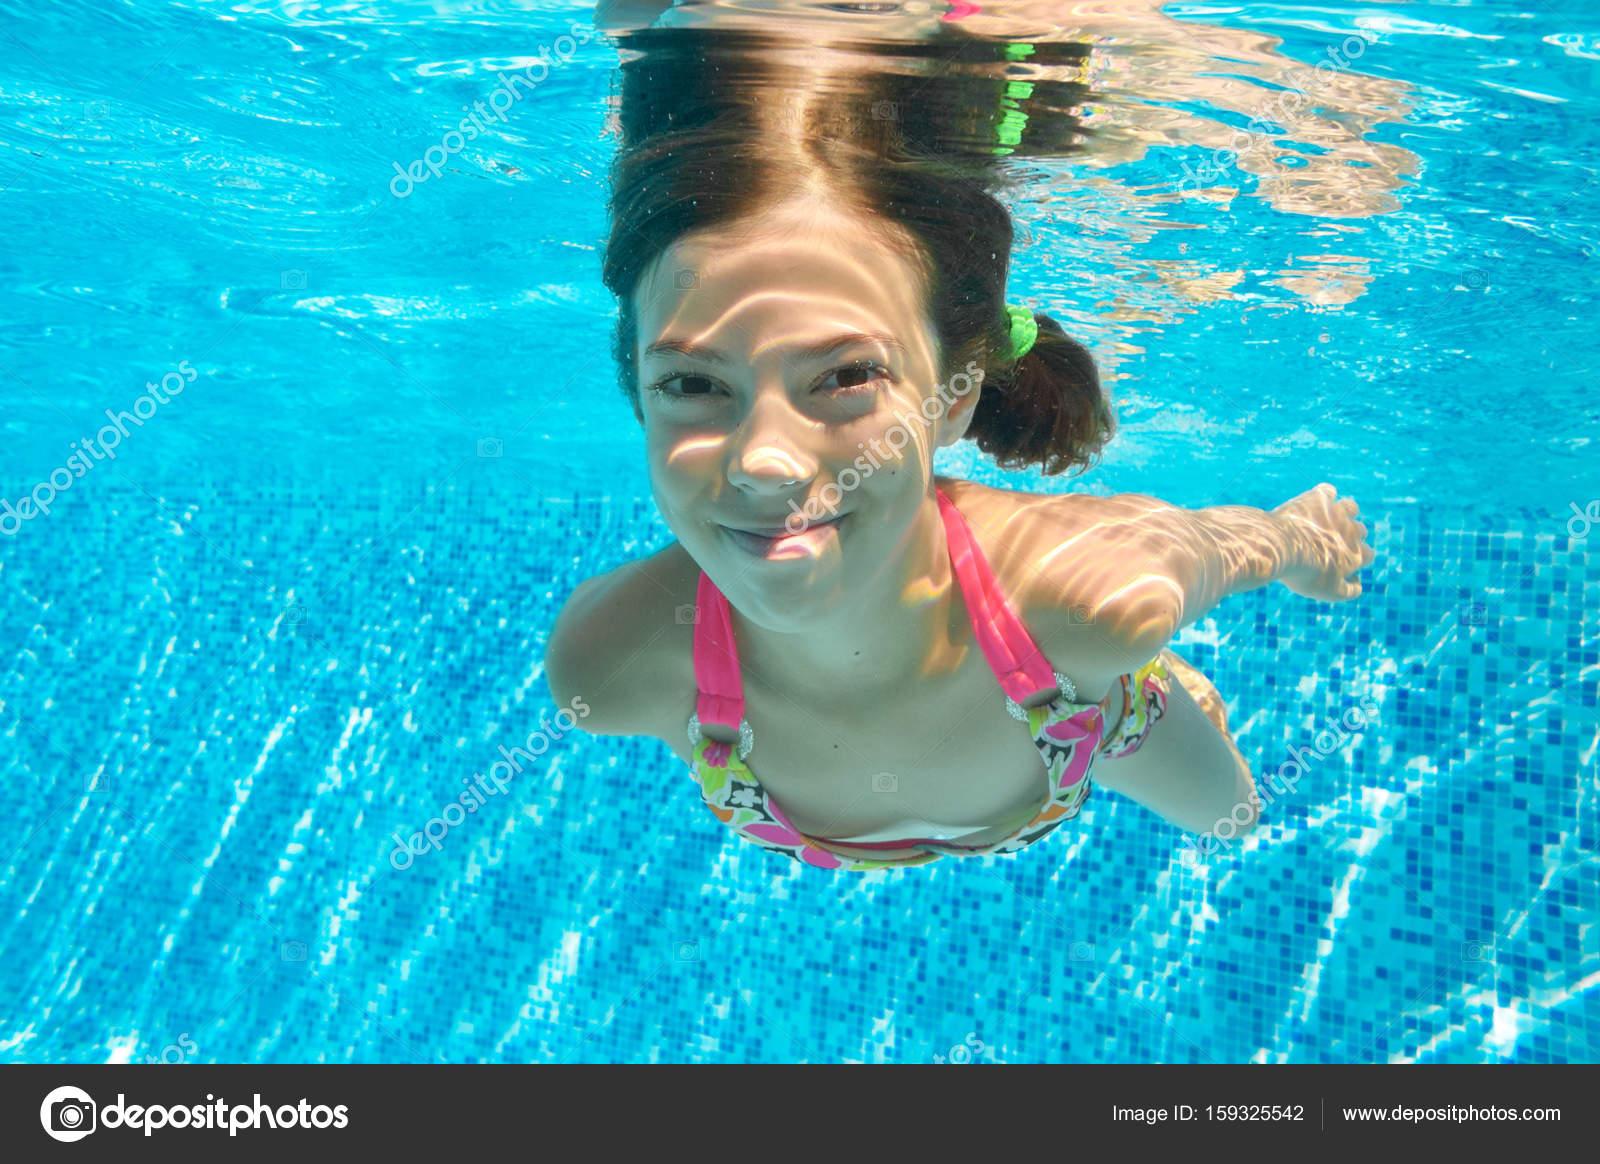 Child swims in pool underwater, happy active girl dives